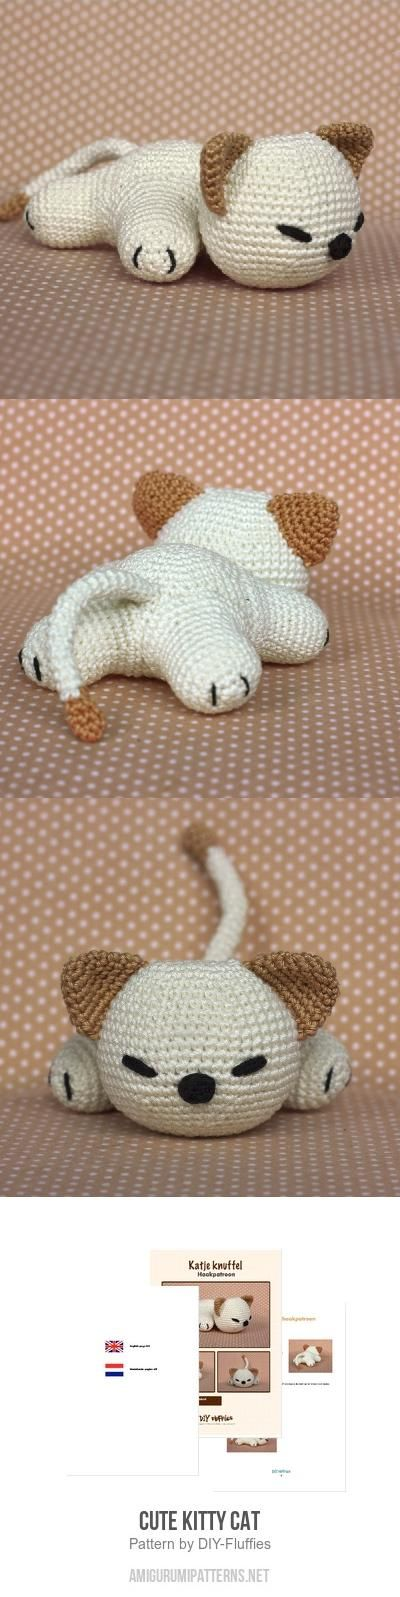 Cute Kitty Cat amigurumi pattern by DIY Fluffies More